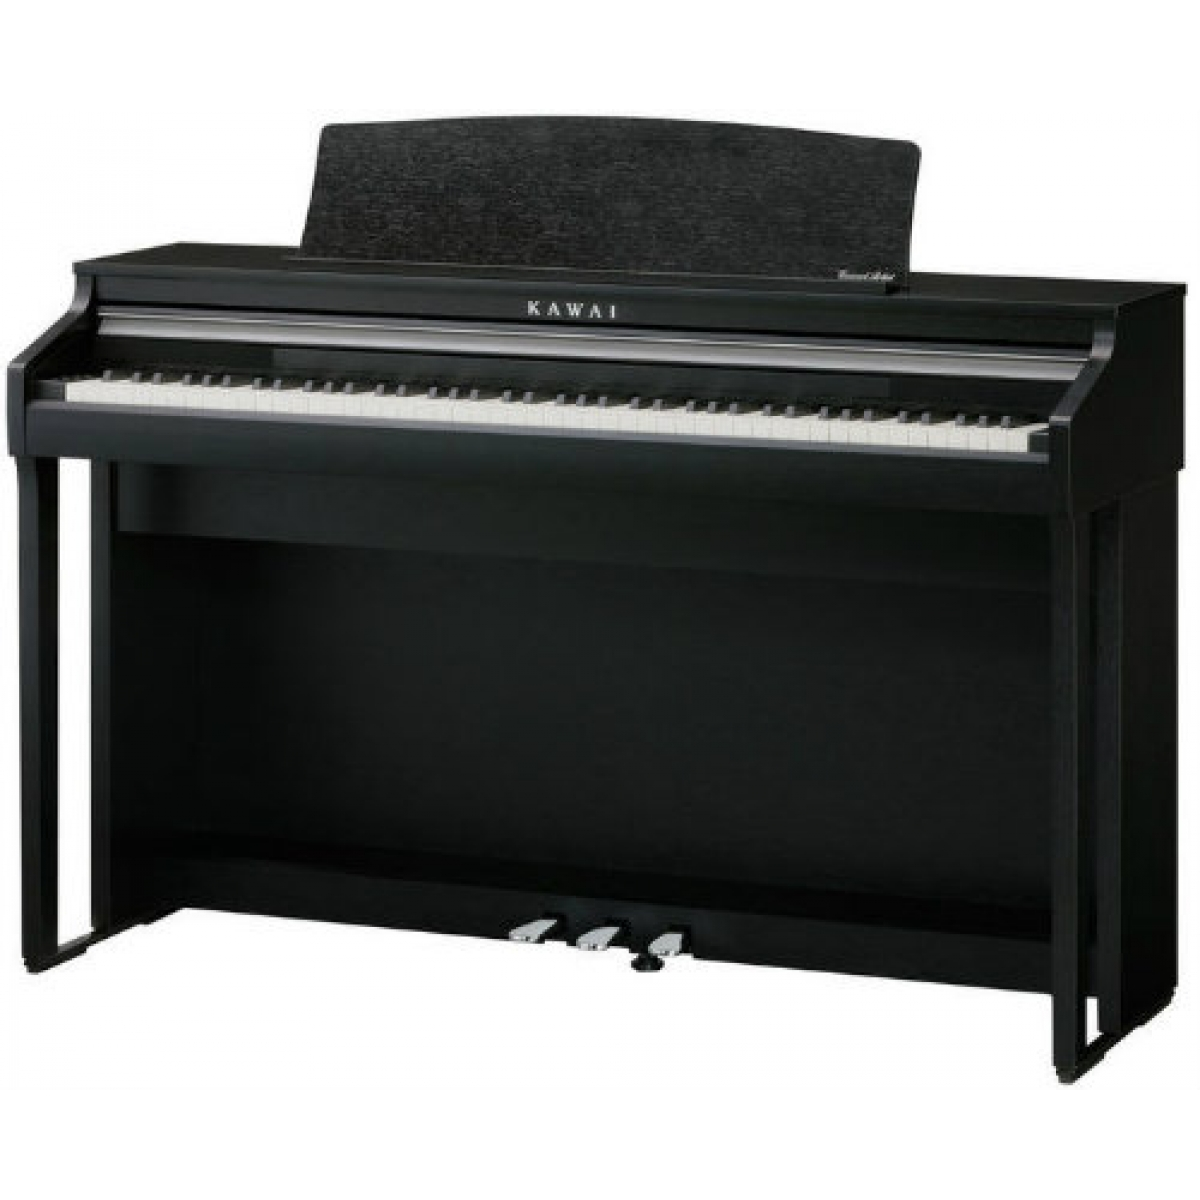 kawai ca48 digital piano black kawai ca48 black at promenade music. Black Bedroom Furniture Sets. Home Design Ideas